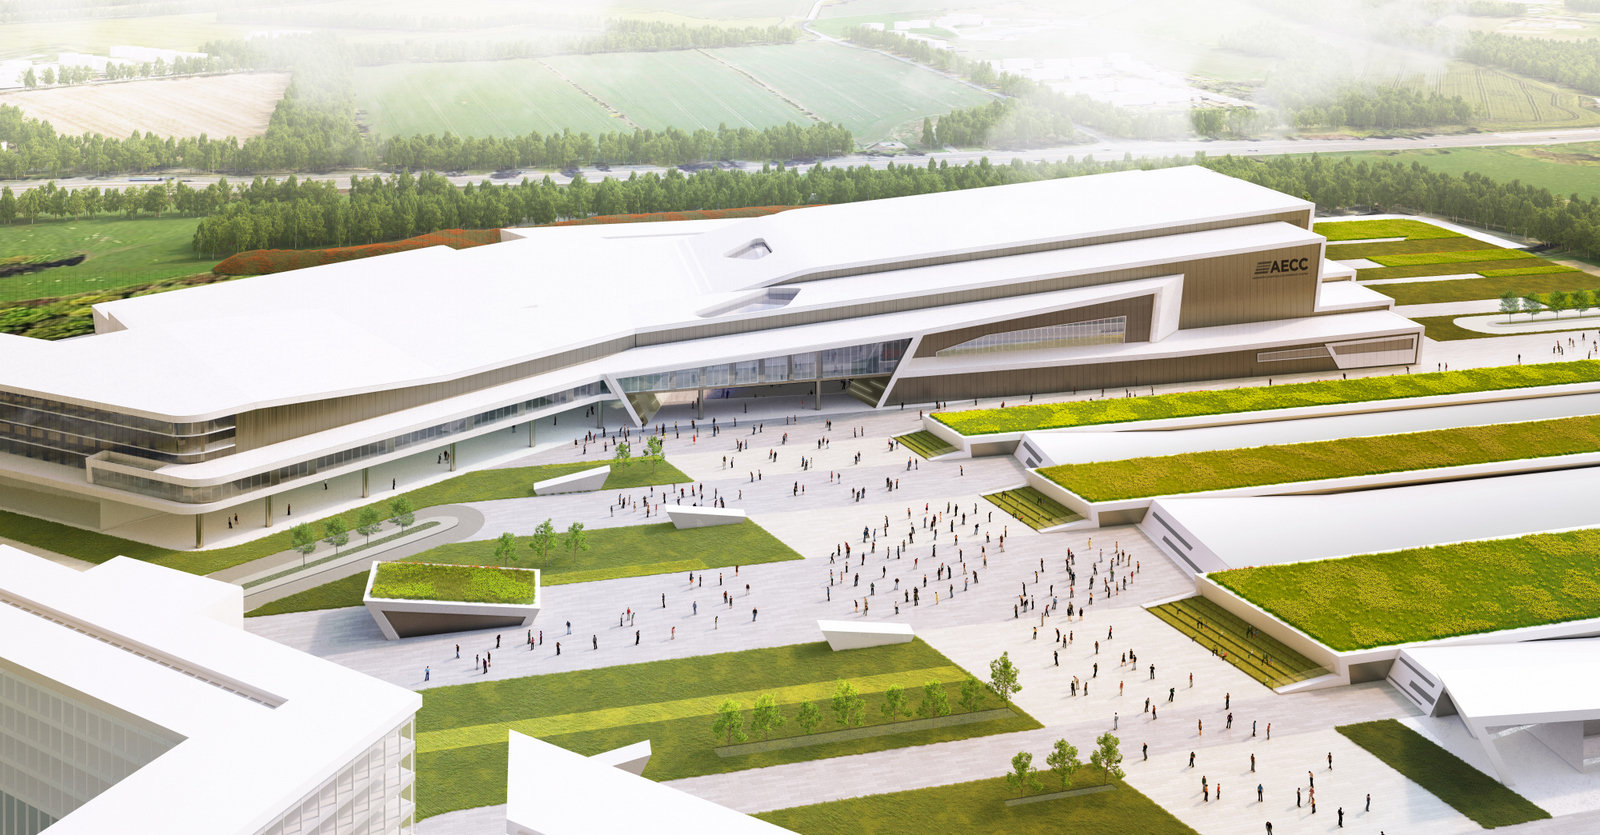 The plan for the new AECC